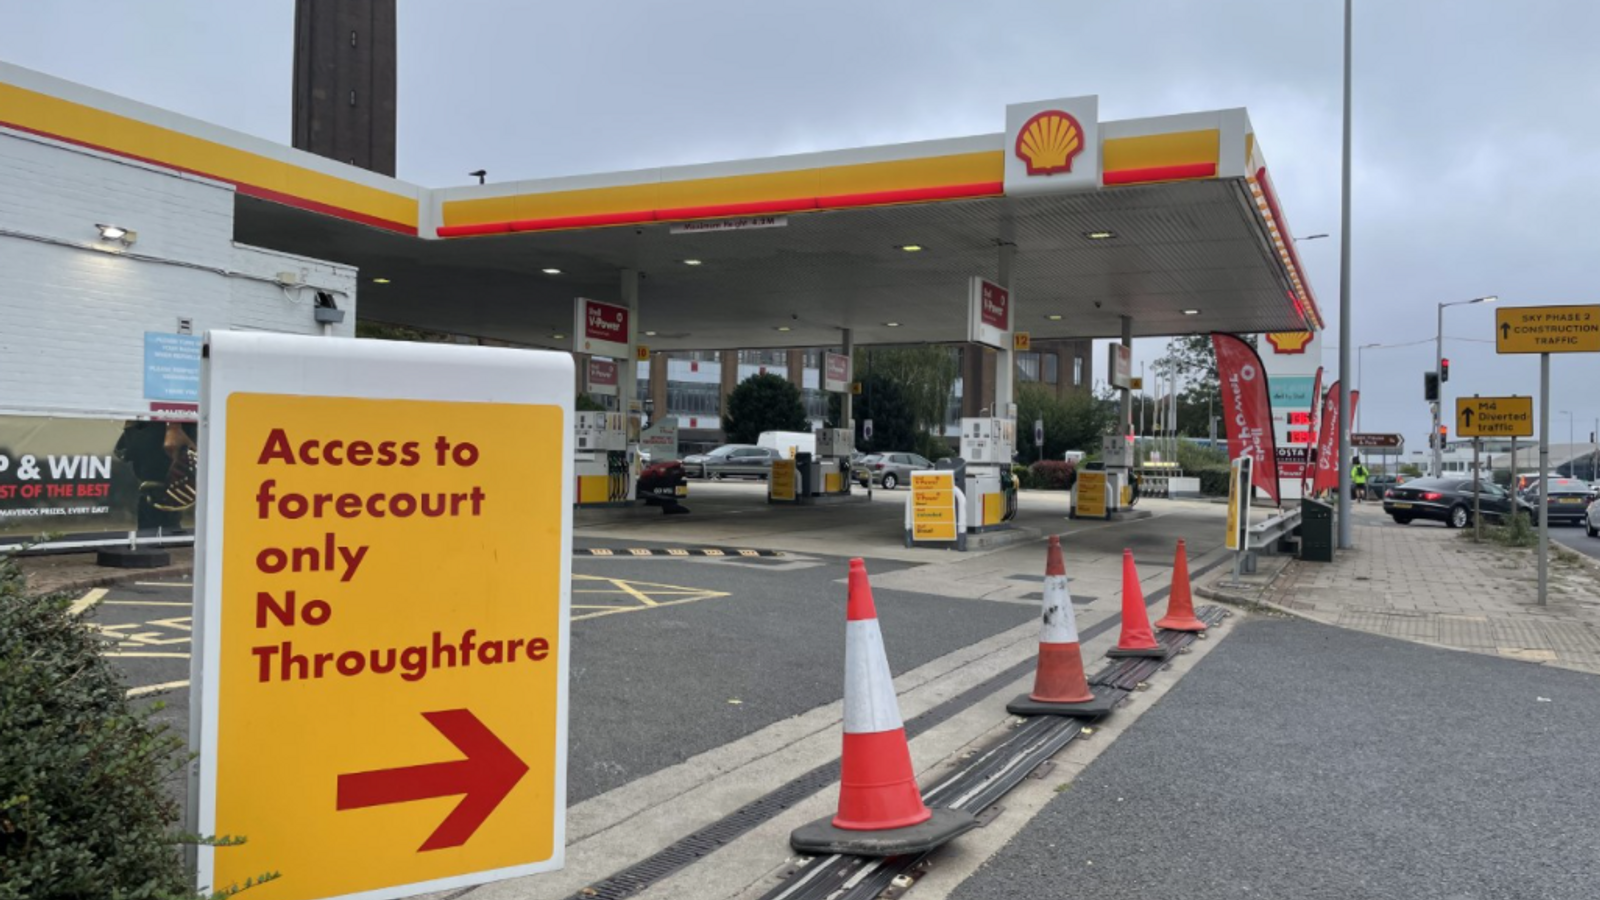 Petrol driver shortage: 'It's stupidity' - Cars spill out on to roads beyond forecourts while waiting for fuel